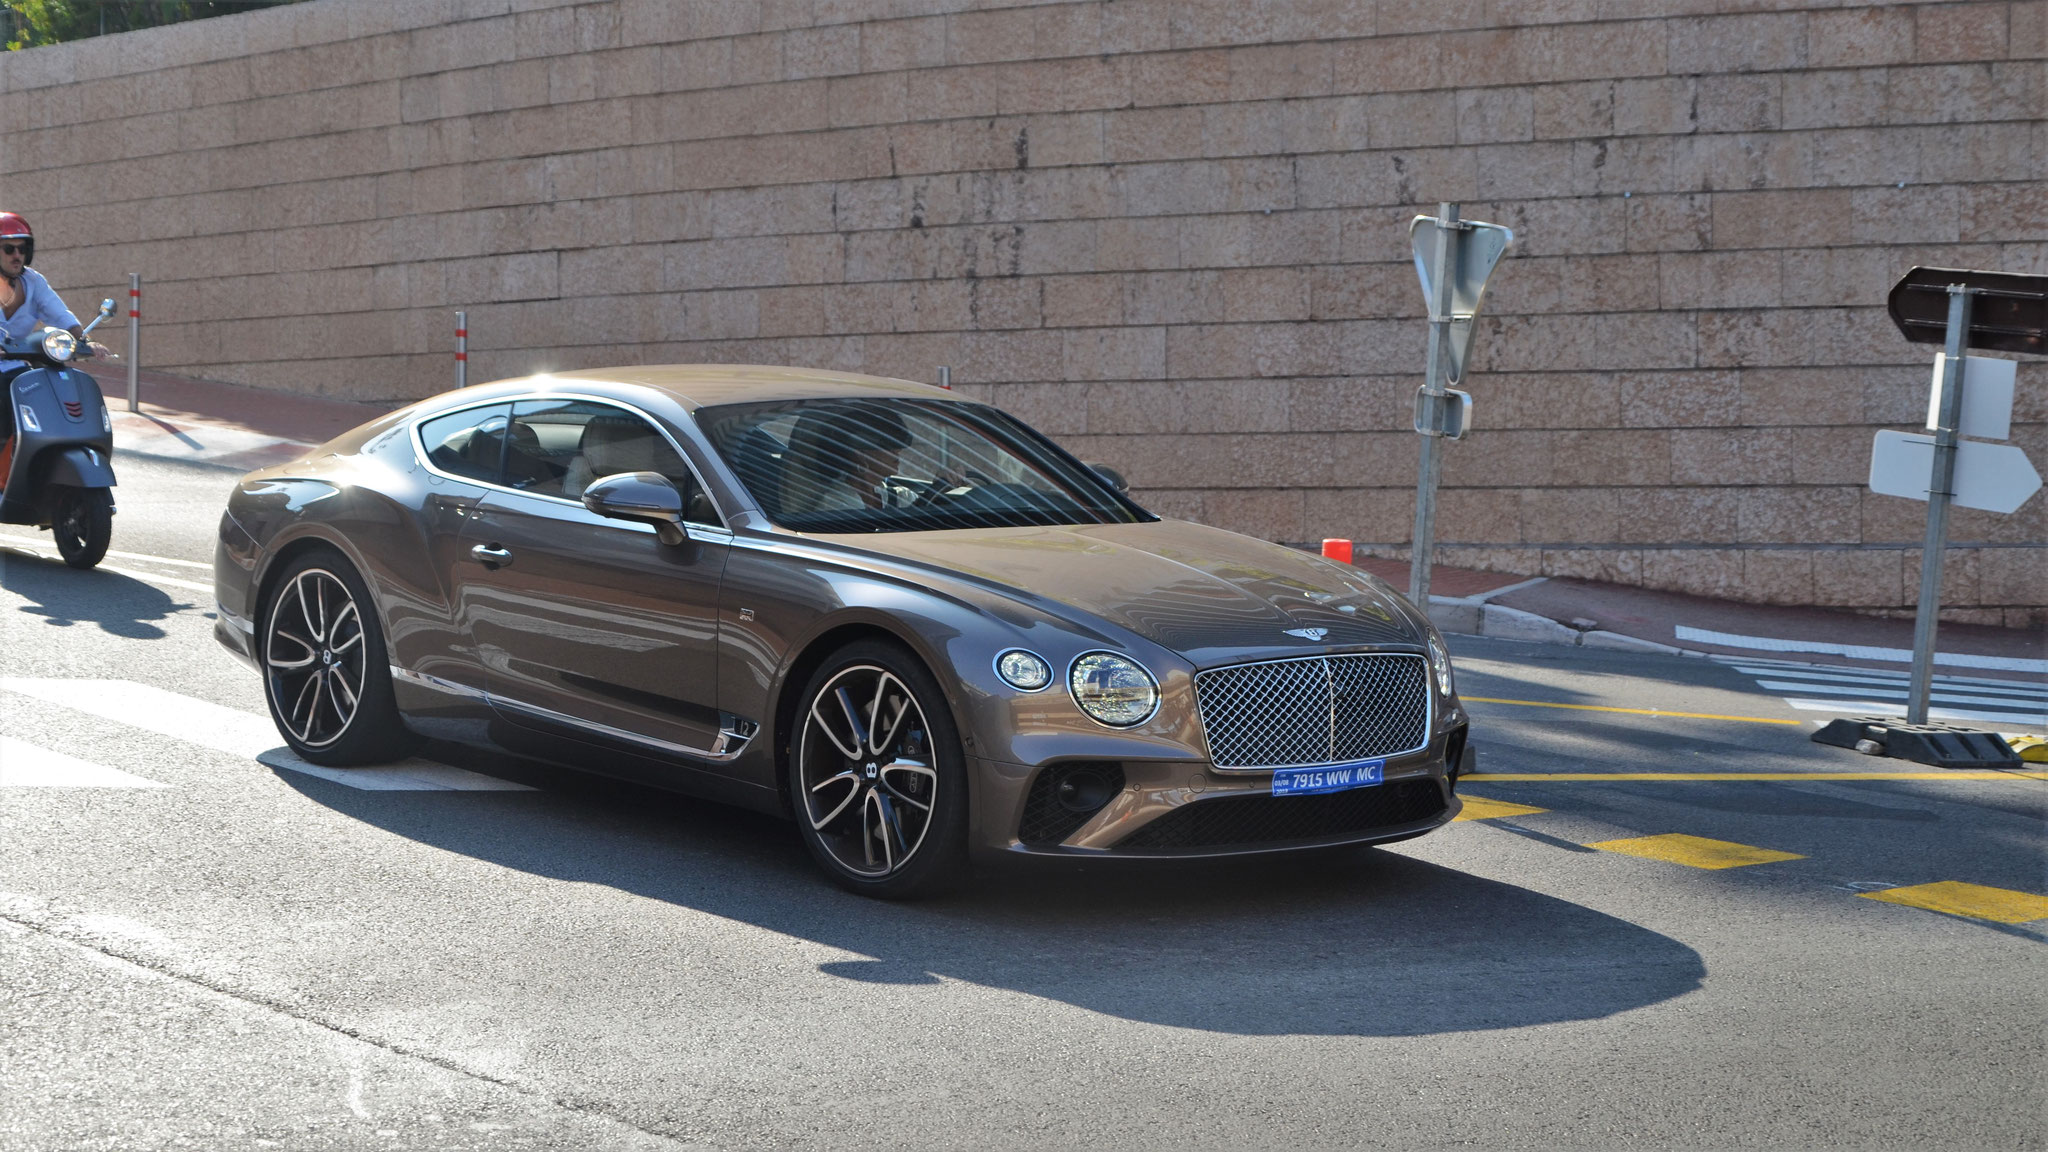 Bentley Continental GT - 7915-WW-MC (MC)